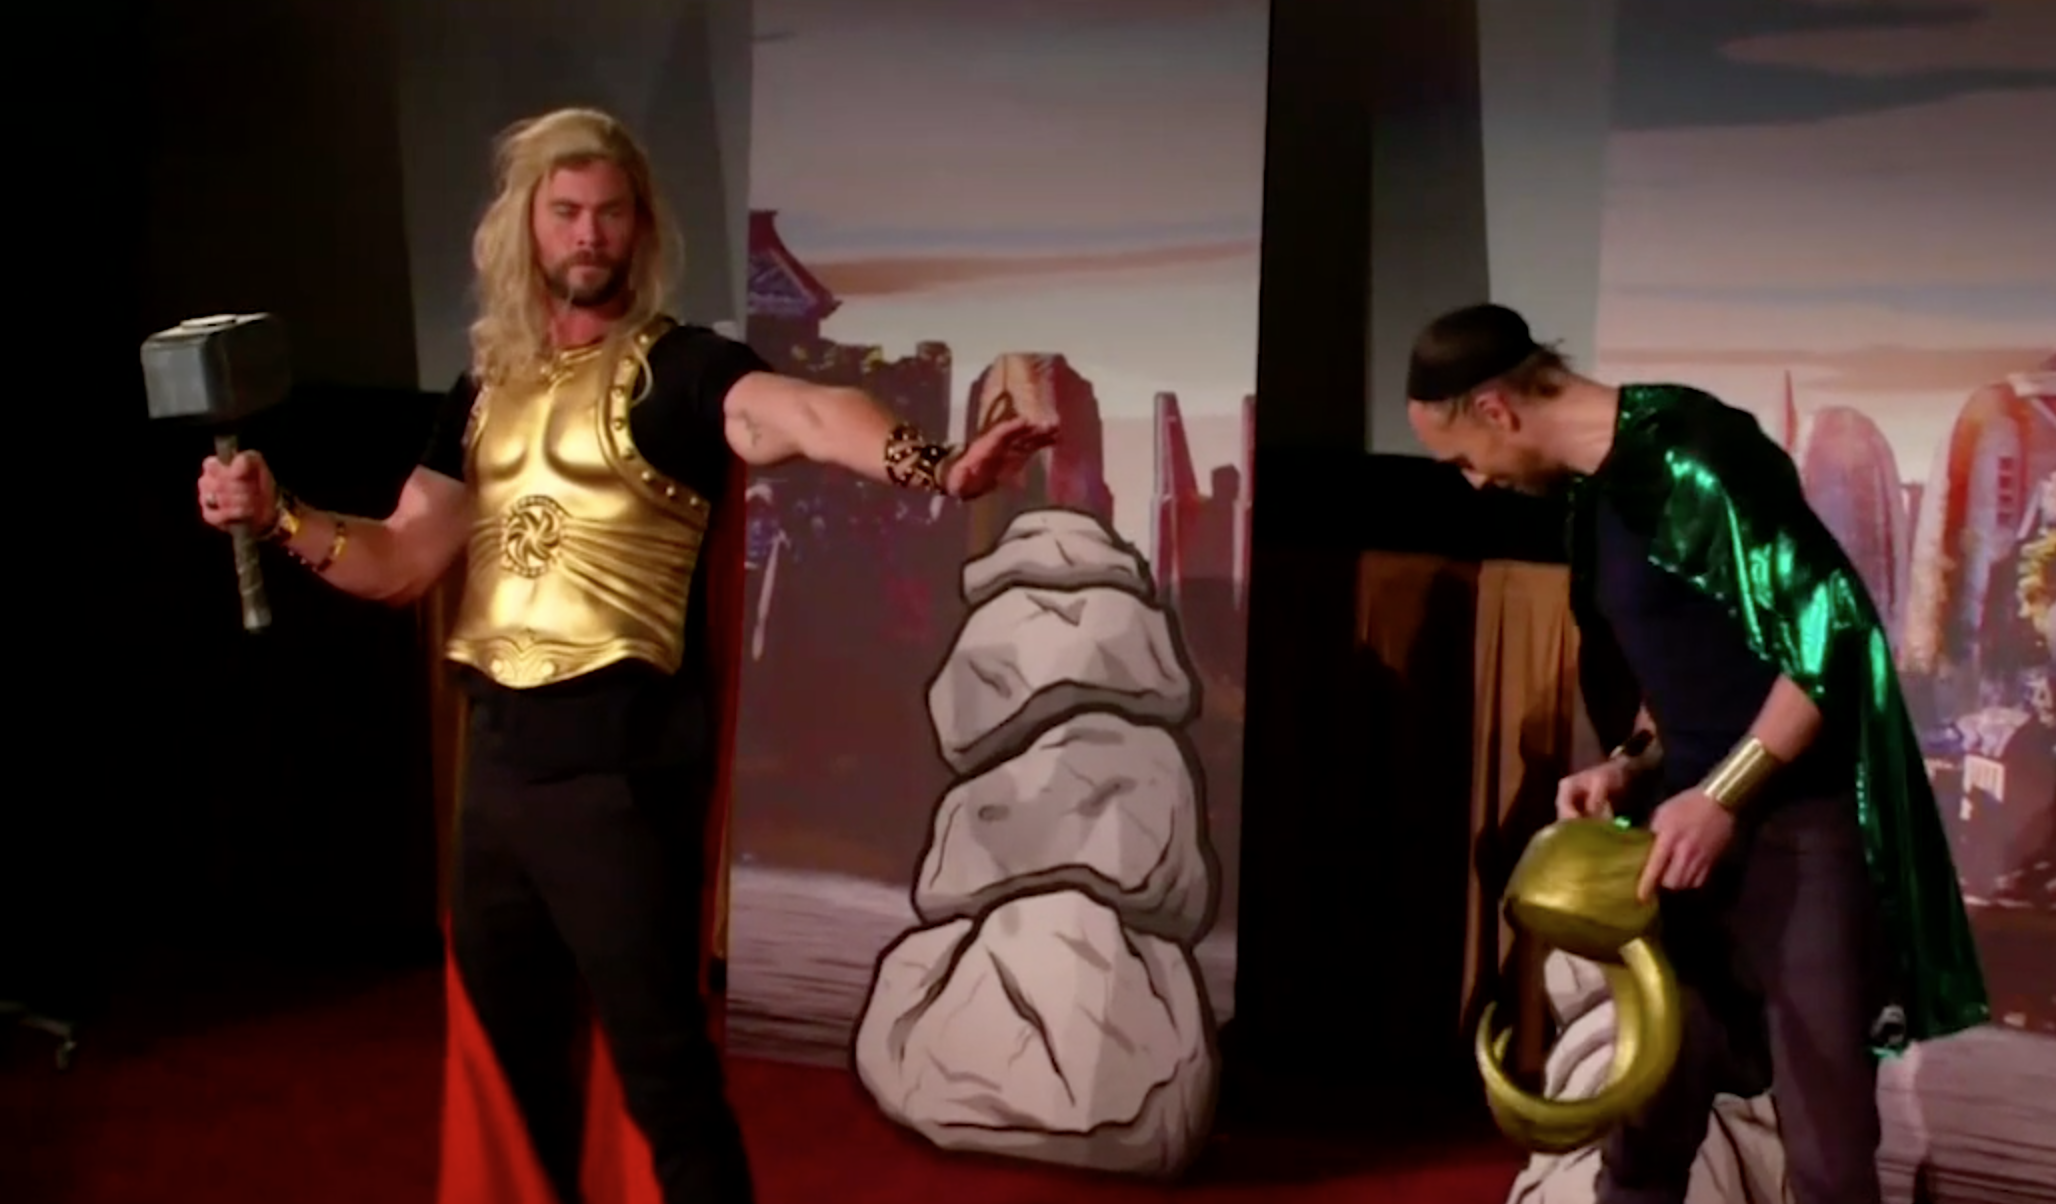 Tome HIddleston's wig falls off while he and Chris Hemsworth perform a scene from <em>Thor: Ragnarok</em> on <em>The Late Late Show With James Corden</em>. (Photo: CBS)